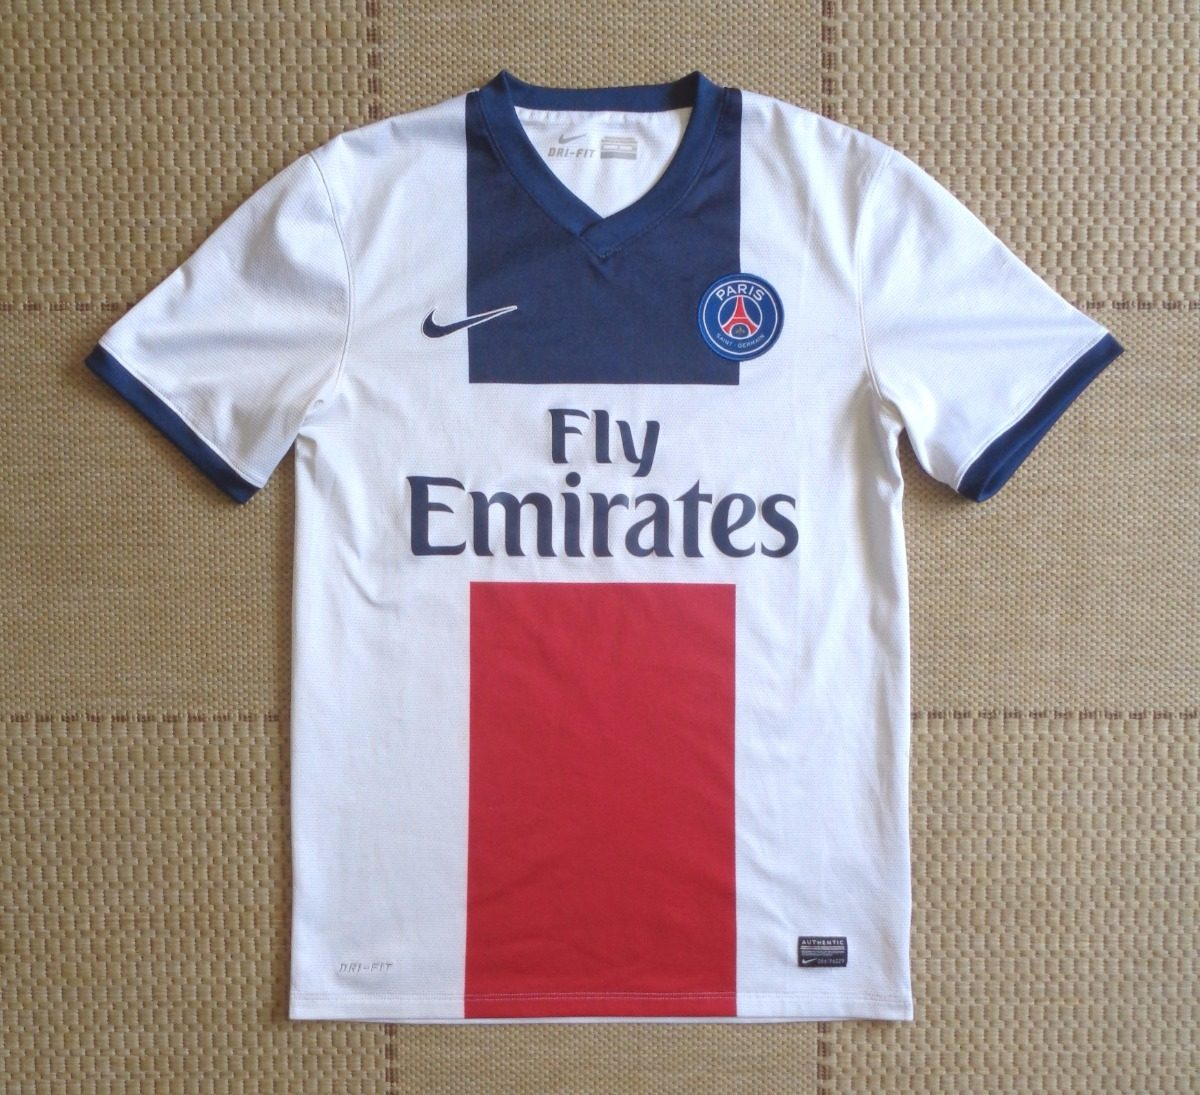 5aba078c2f camisa original psg 2013 2014 away. Carregando zoom.